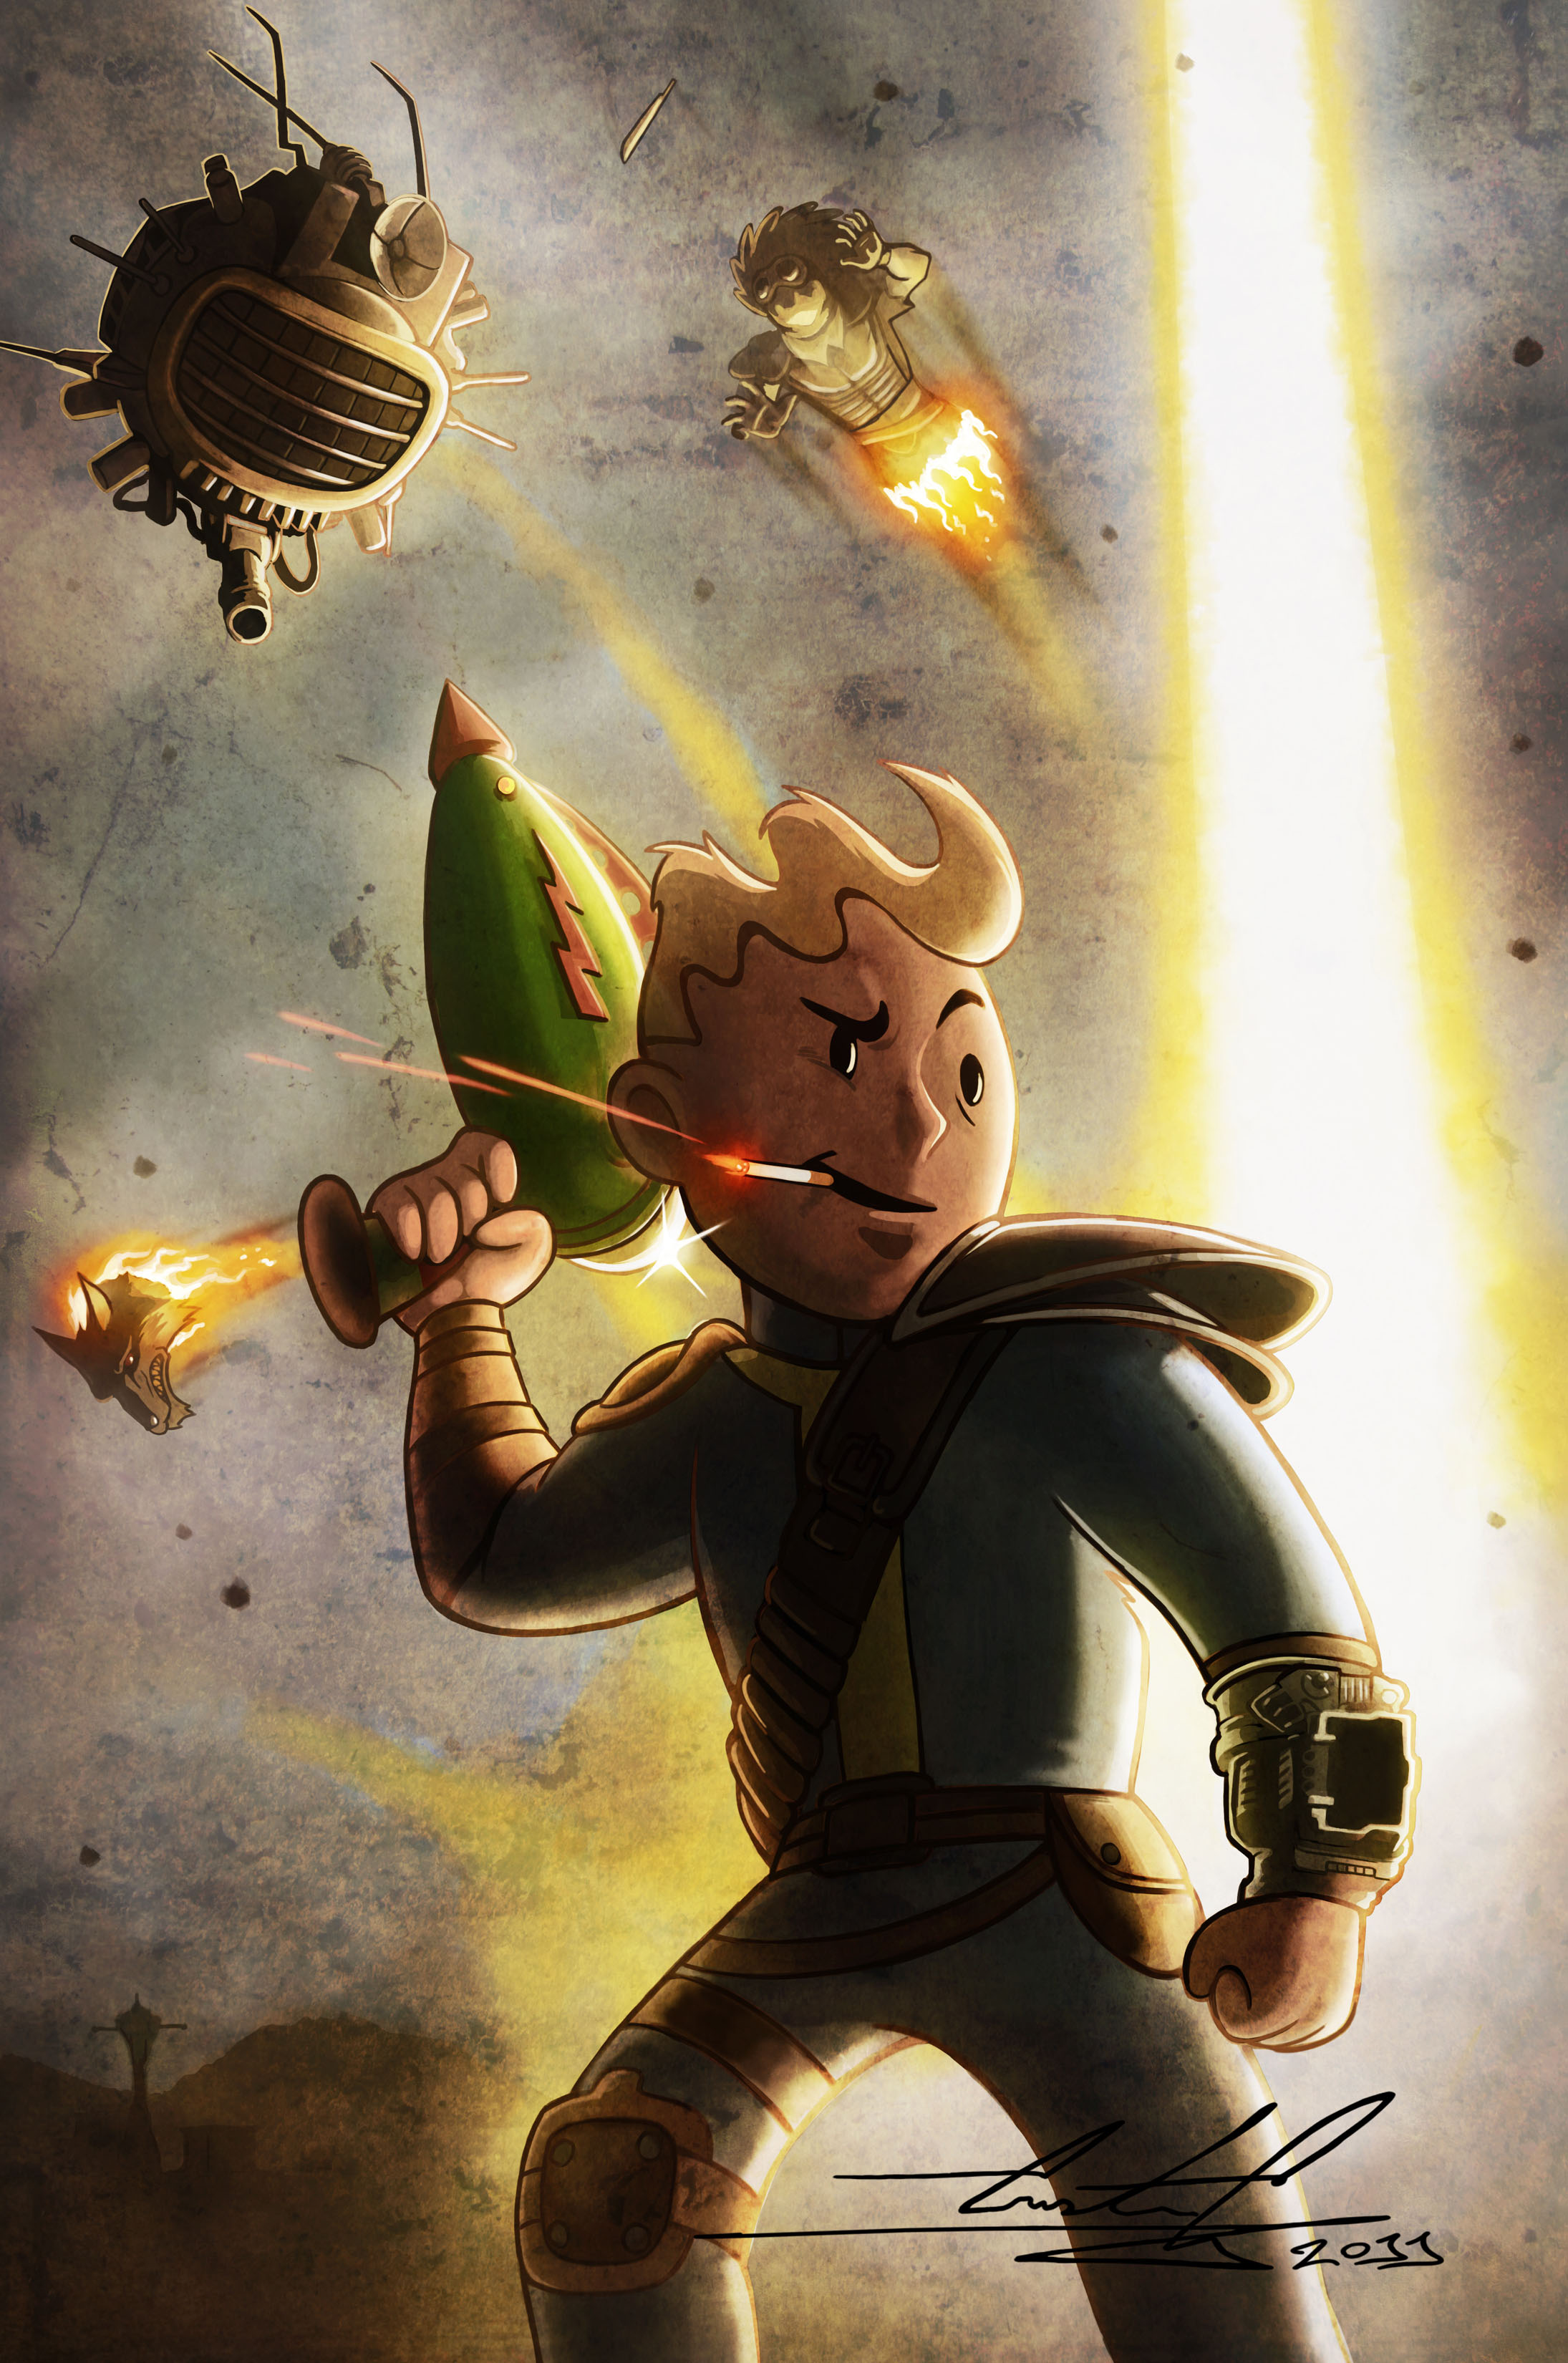 One Of The Coolest Fallout Wallpapers I Ve Ever Seen Fallout